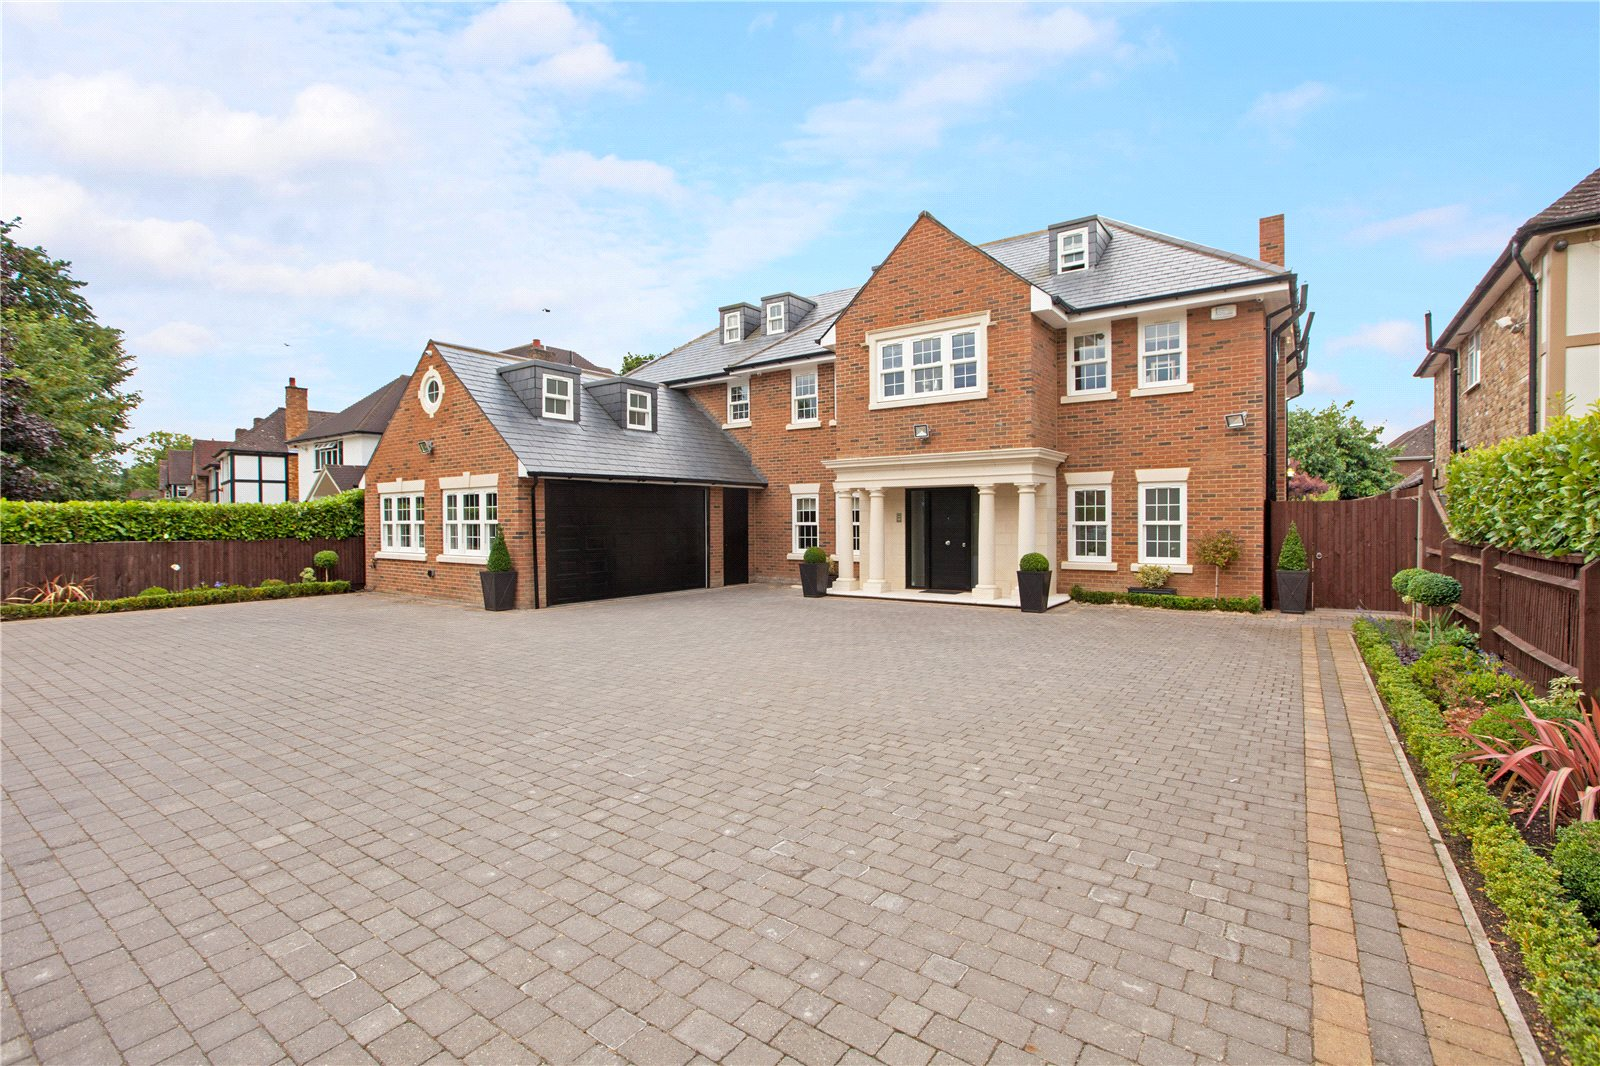 一戸建て のために 売買 アット Dukes Wood Drive, Gerrards Cross, Buckinghamshire, SL9 Gerrards Cross, イギリス